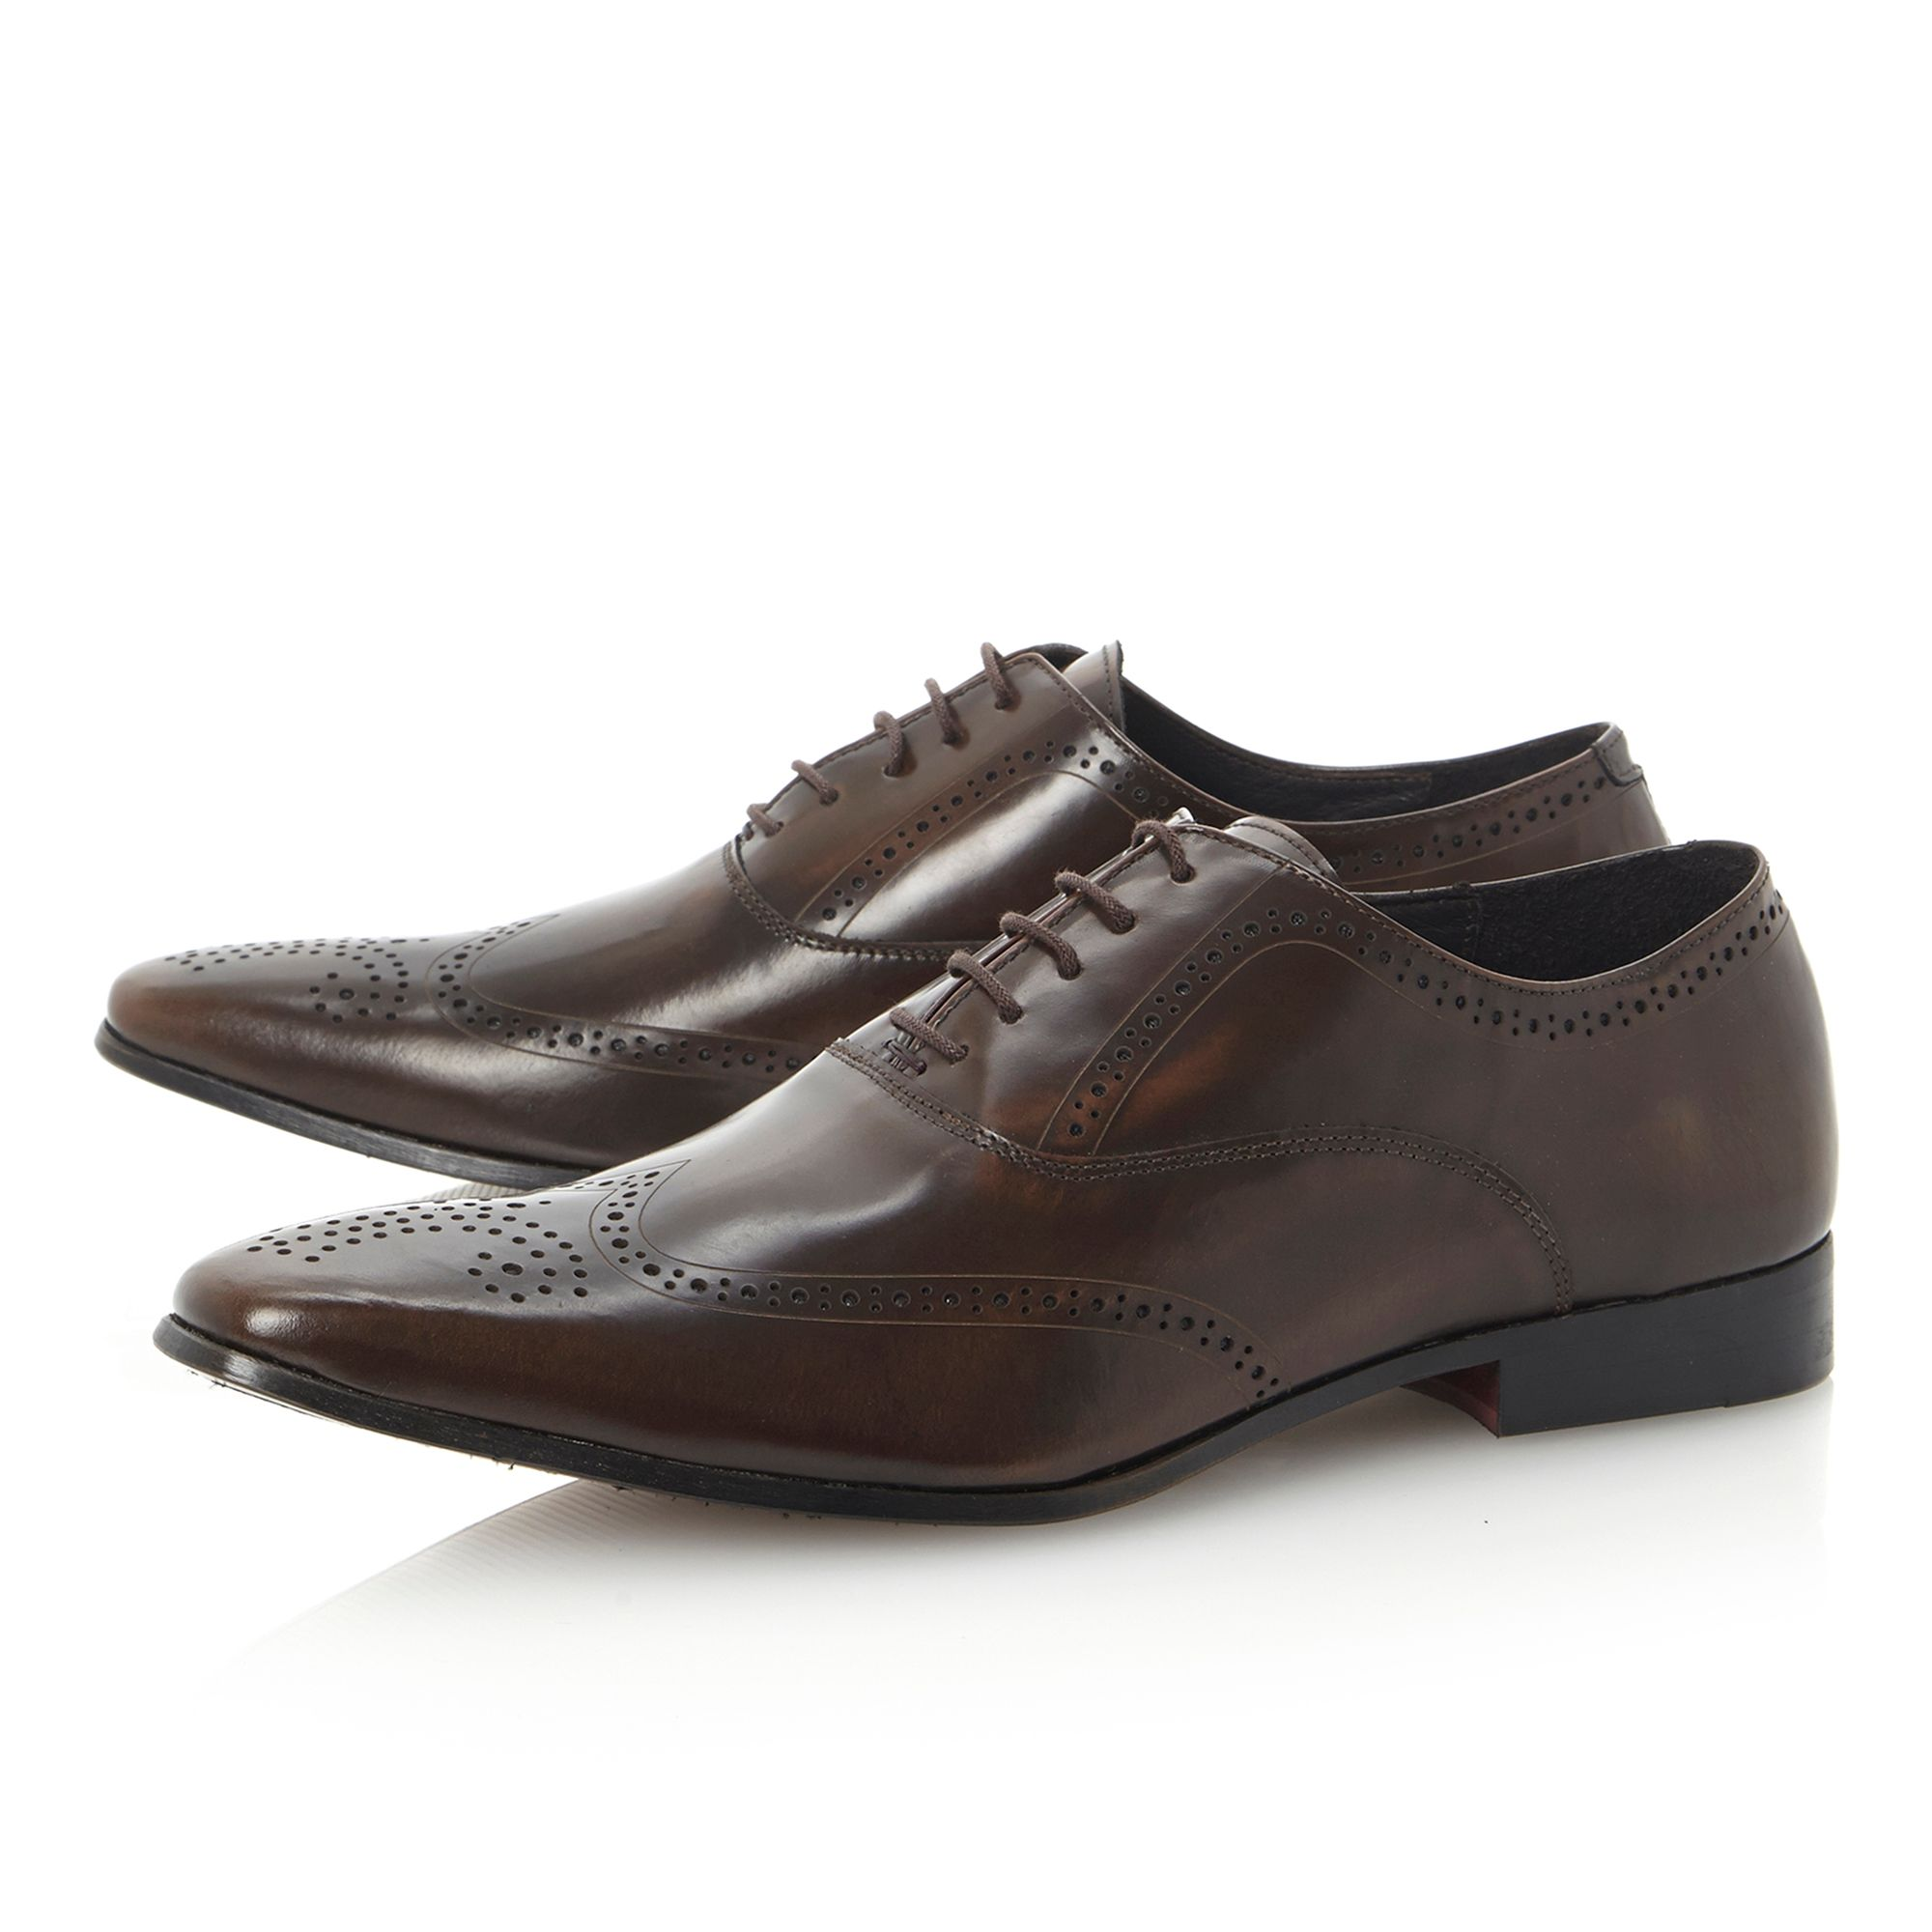 Acoustical laser print oxford shoes